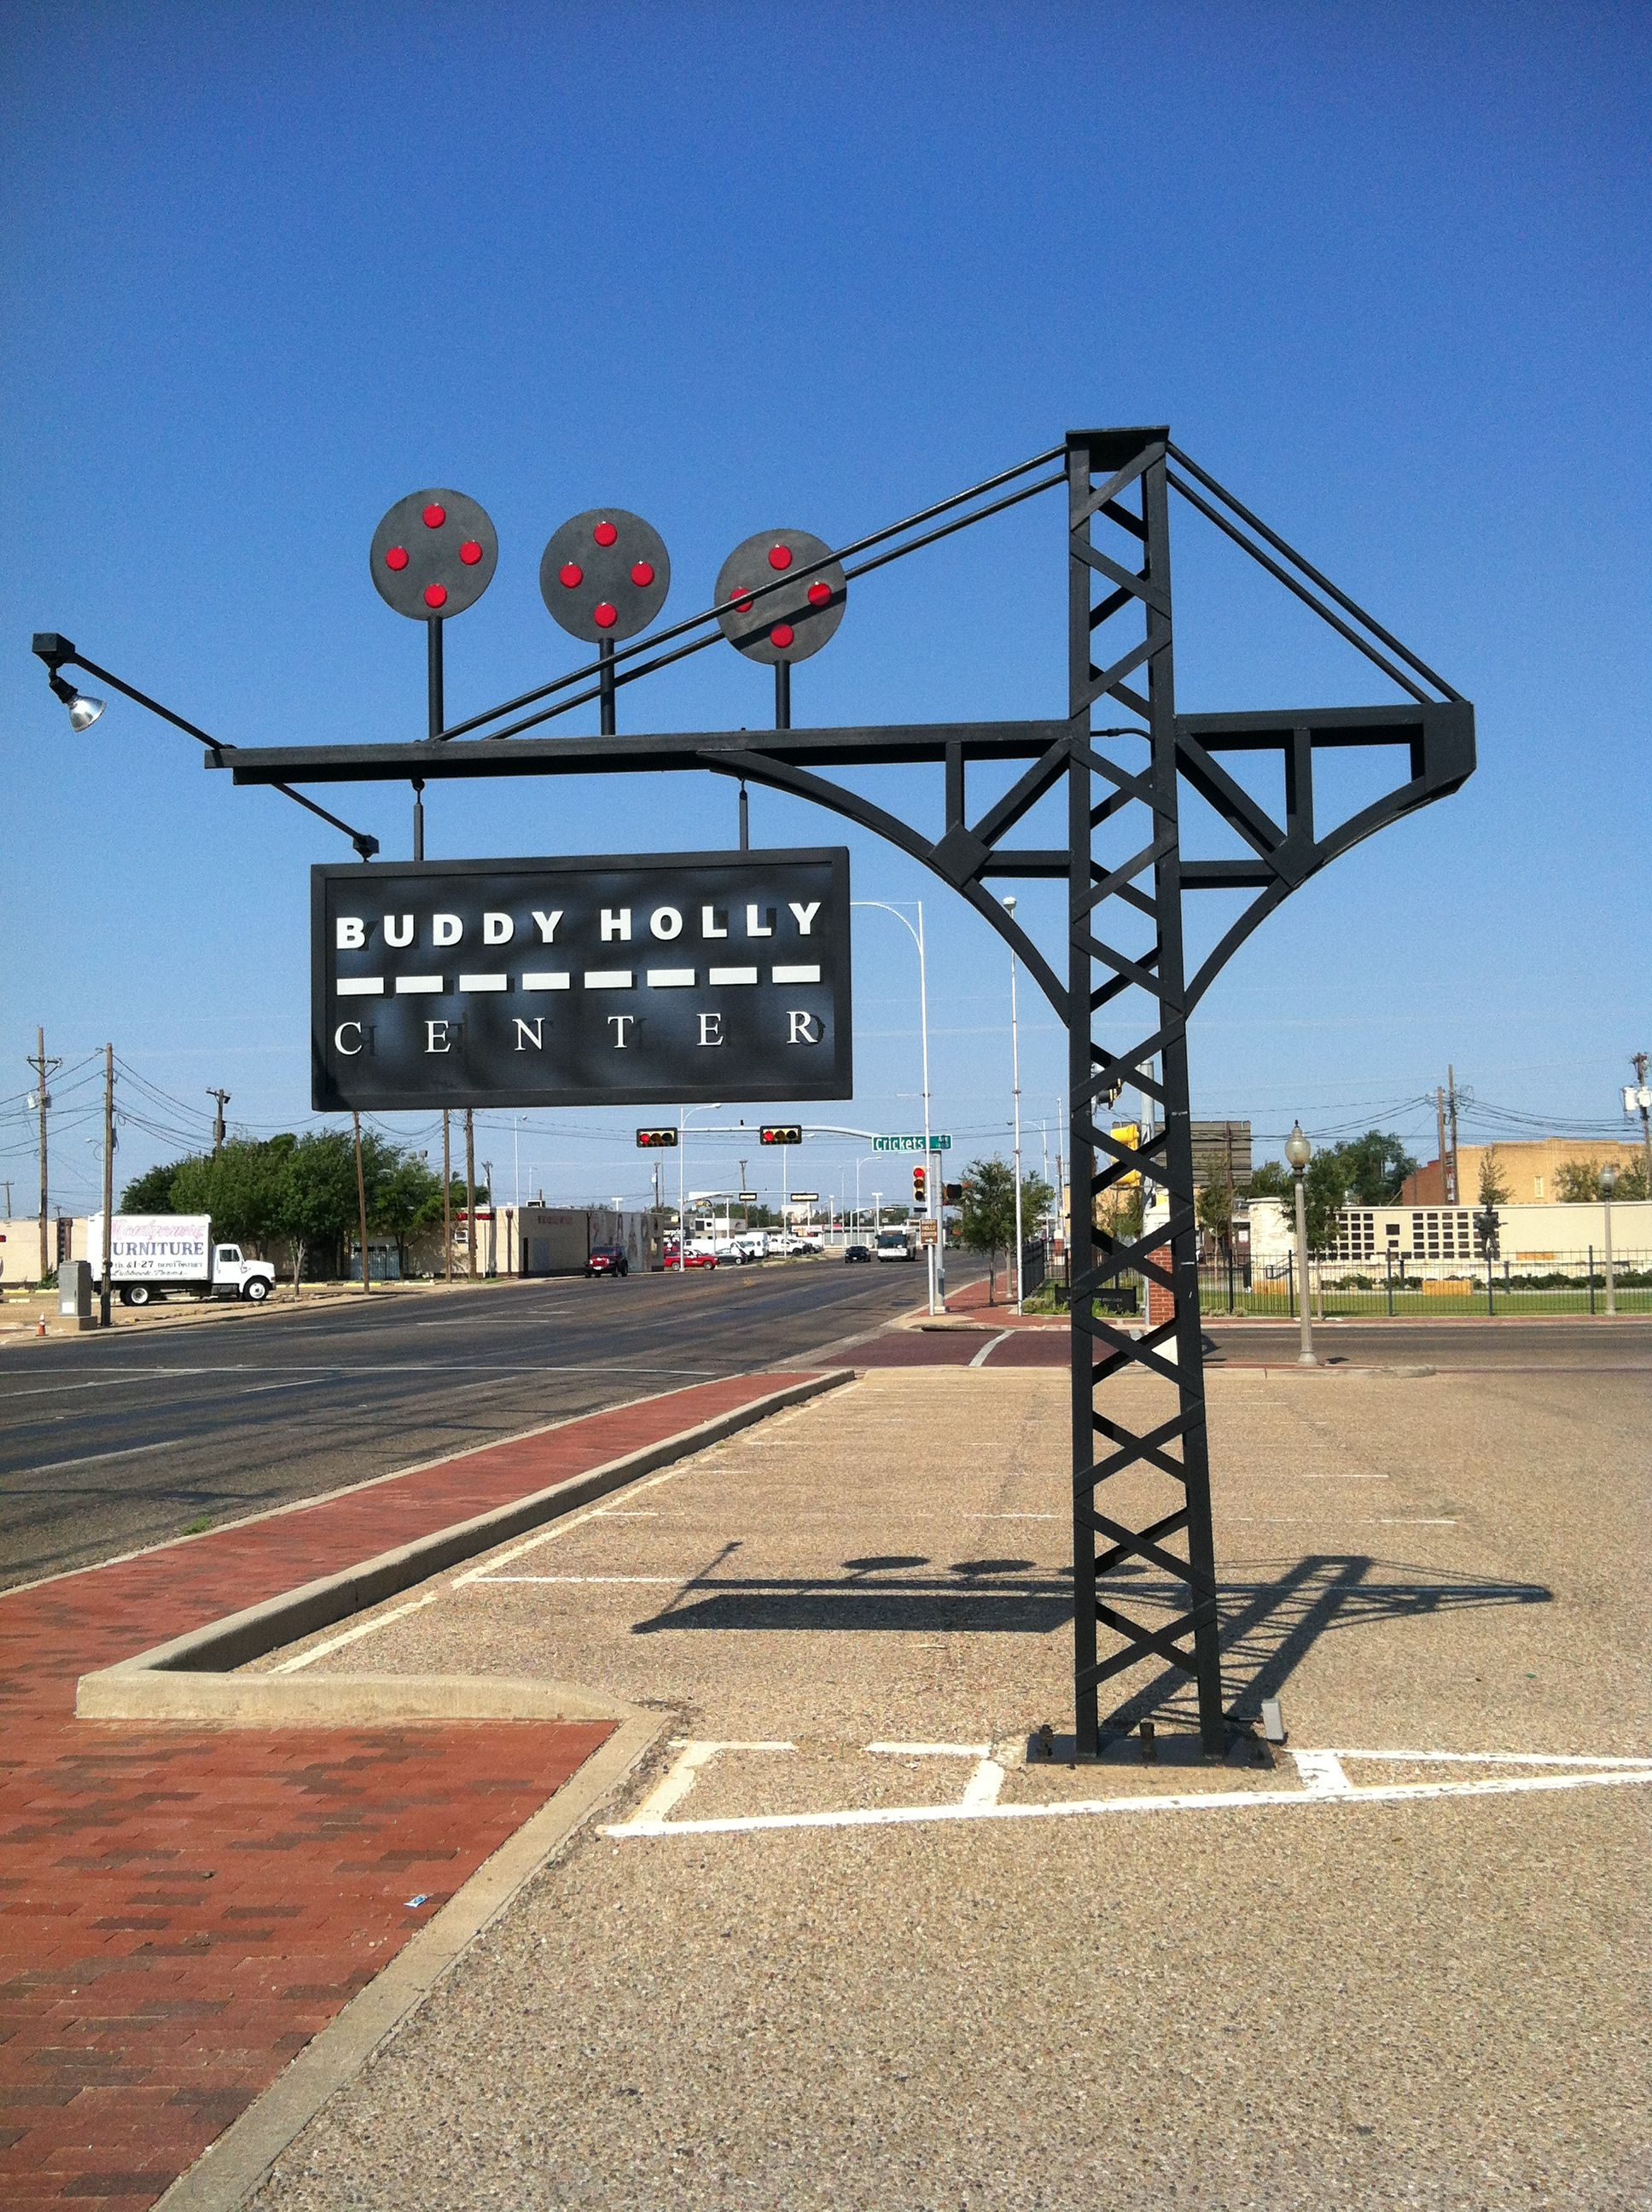 Buddy Holly Museum Lubbock Tx Buddy Holly Rivers And Roads Lubbock